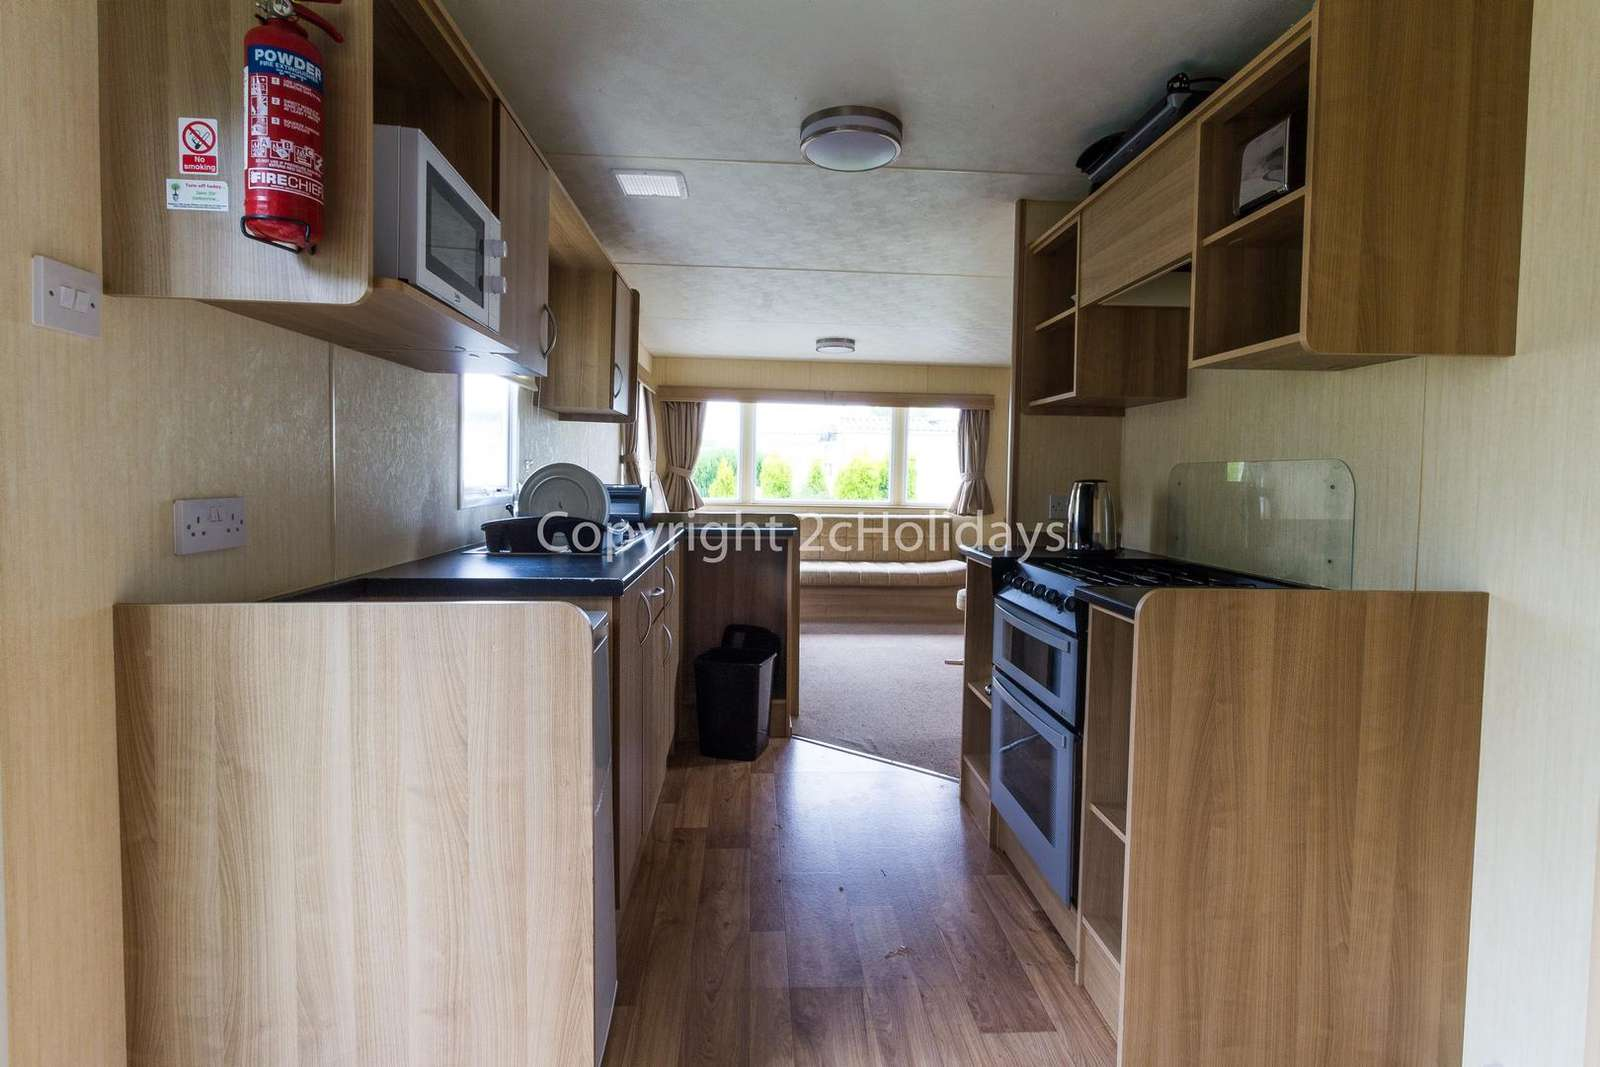 Full size oven/hob in this accommodation!